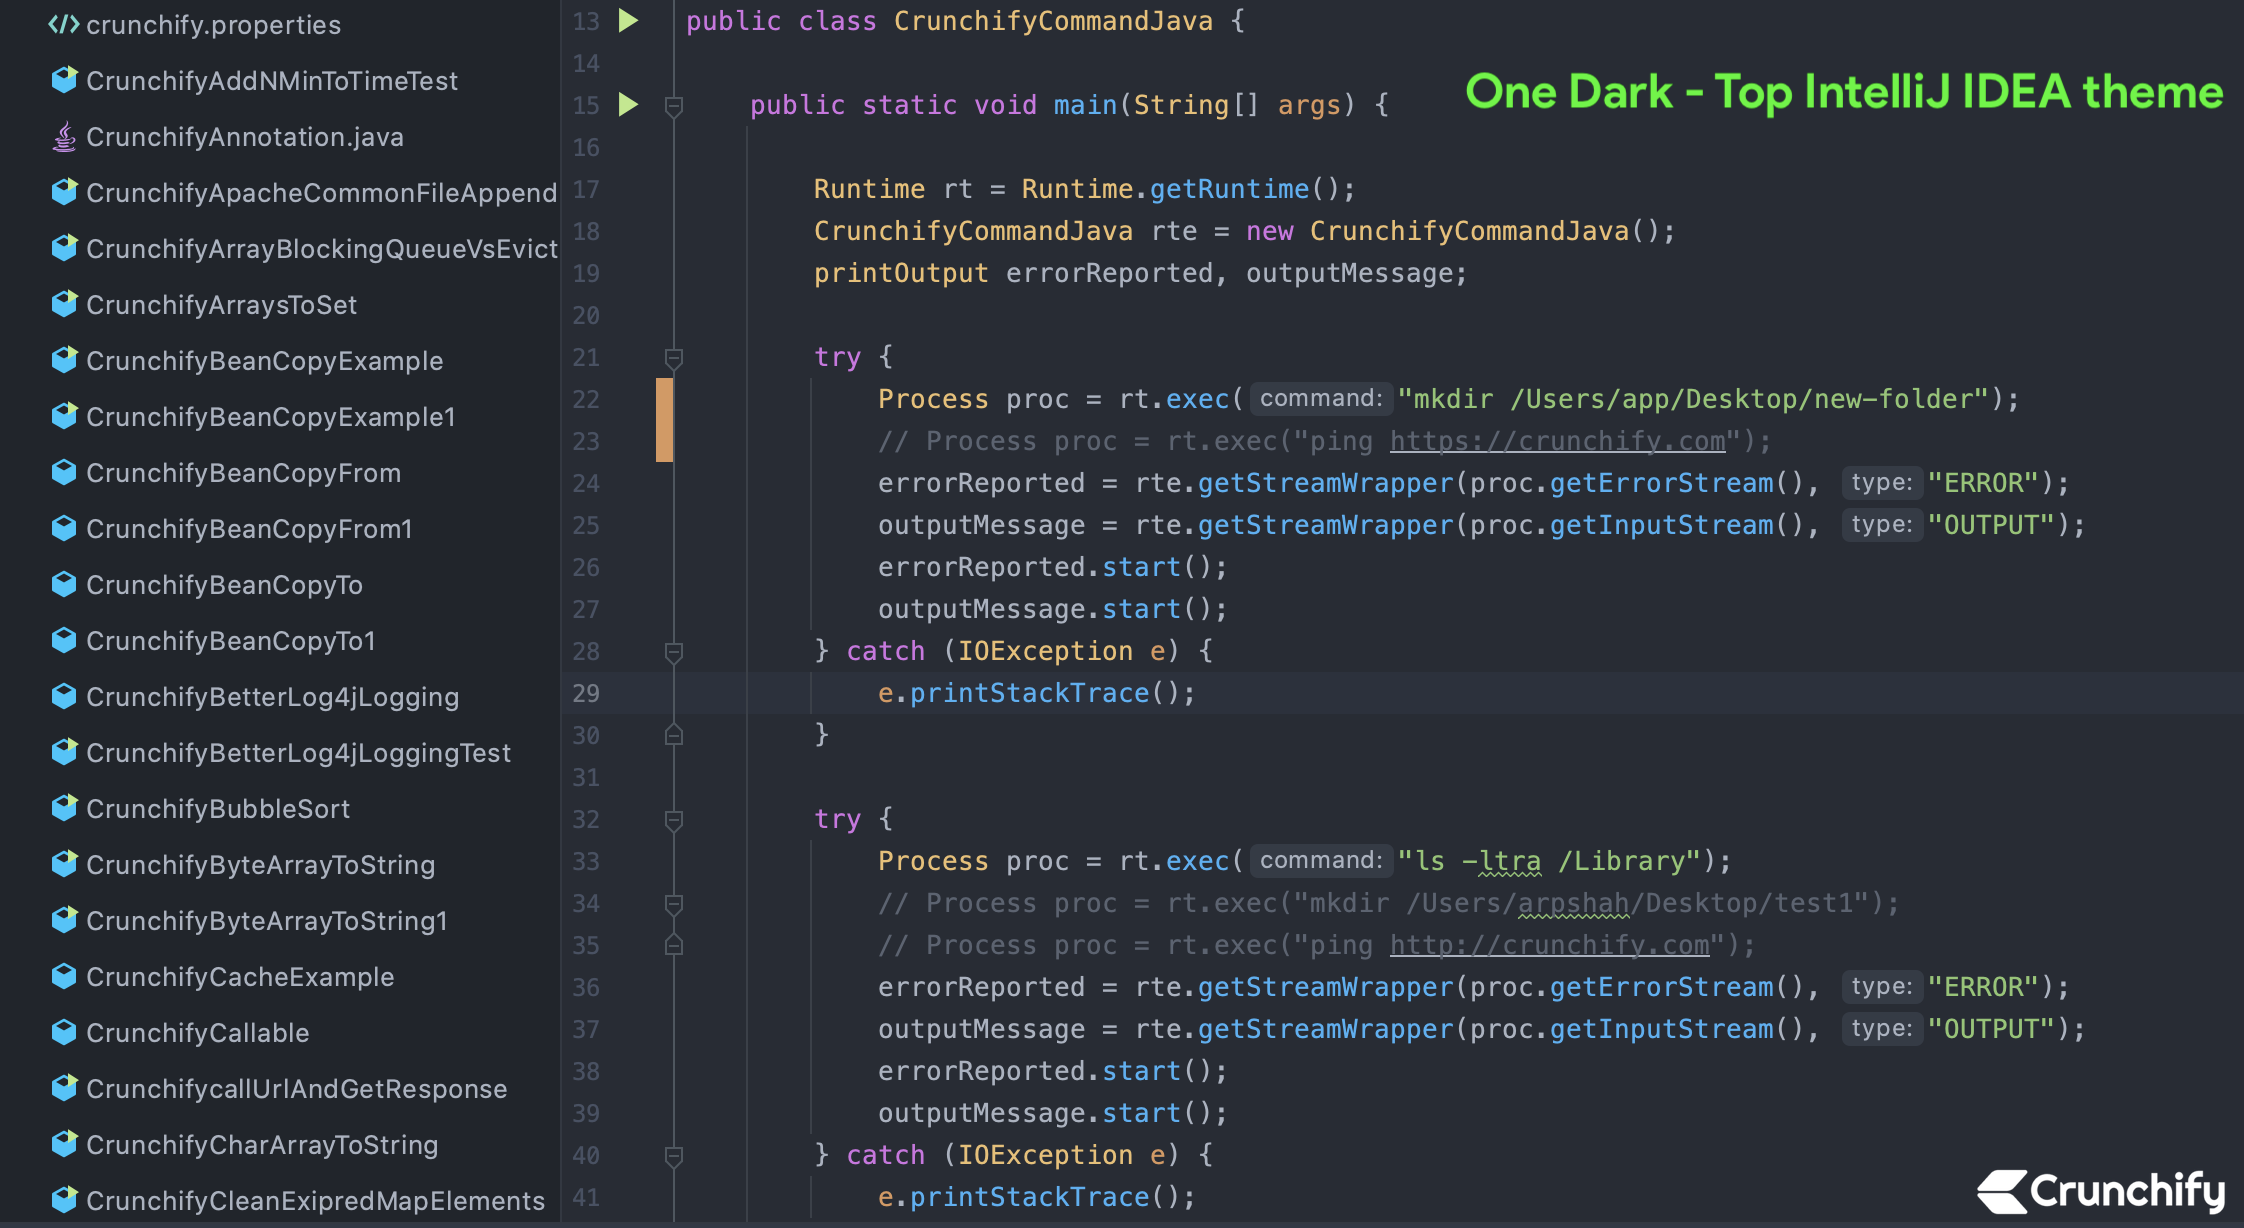 Top IntelliJ IDEA theme - one dark theme